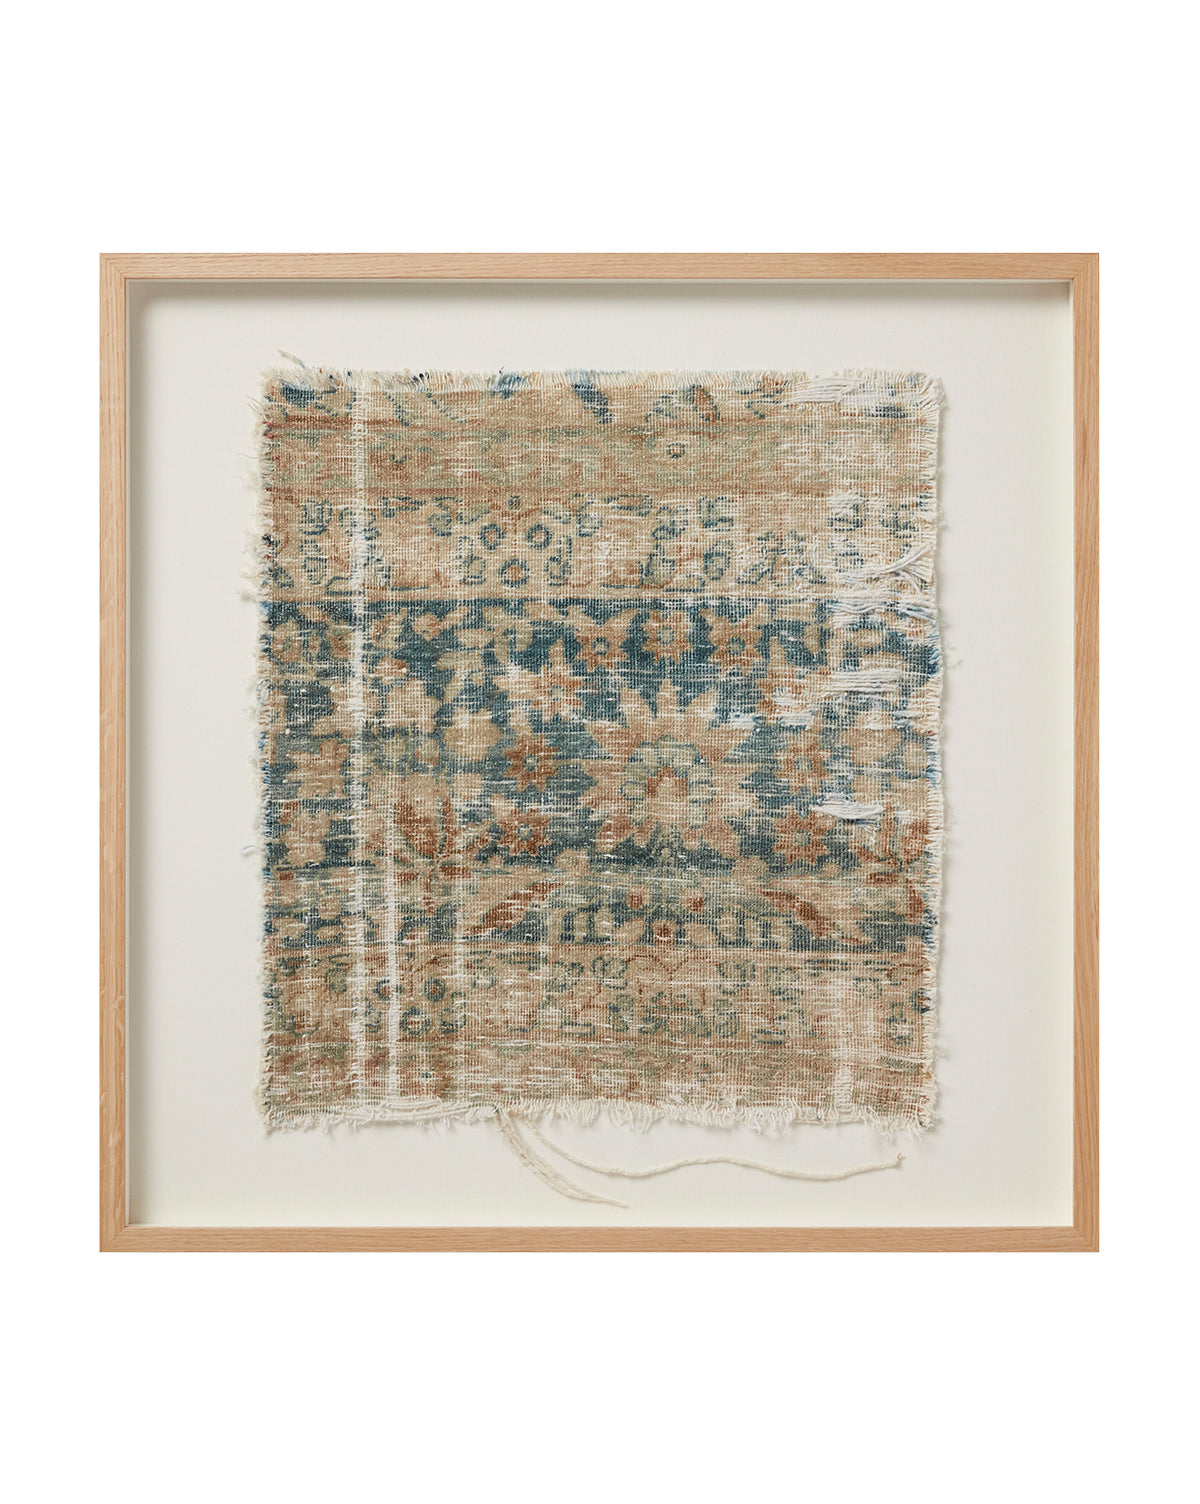 Vintage Framed Rug No. 10